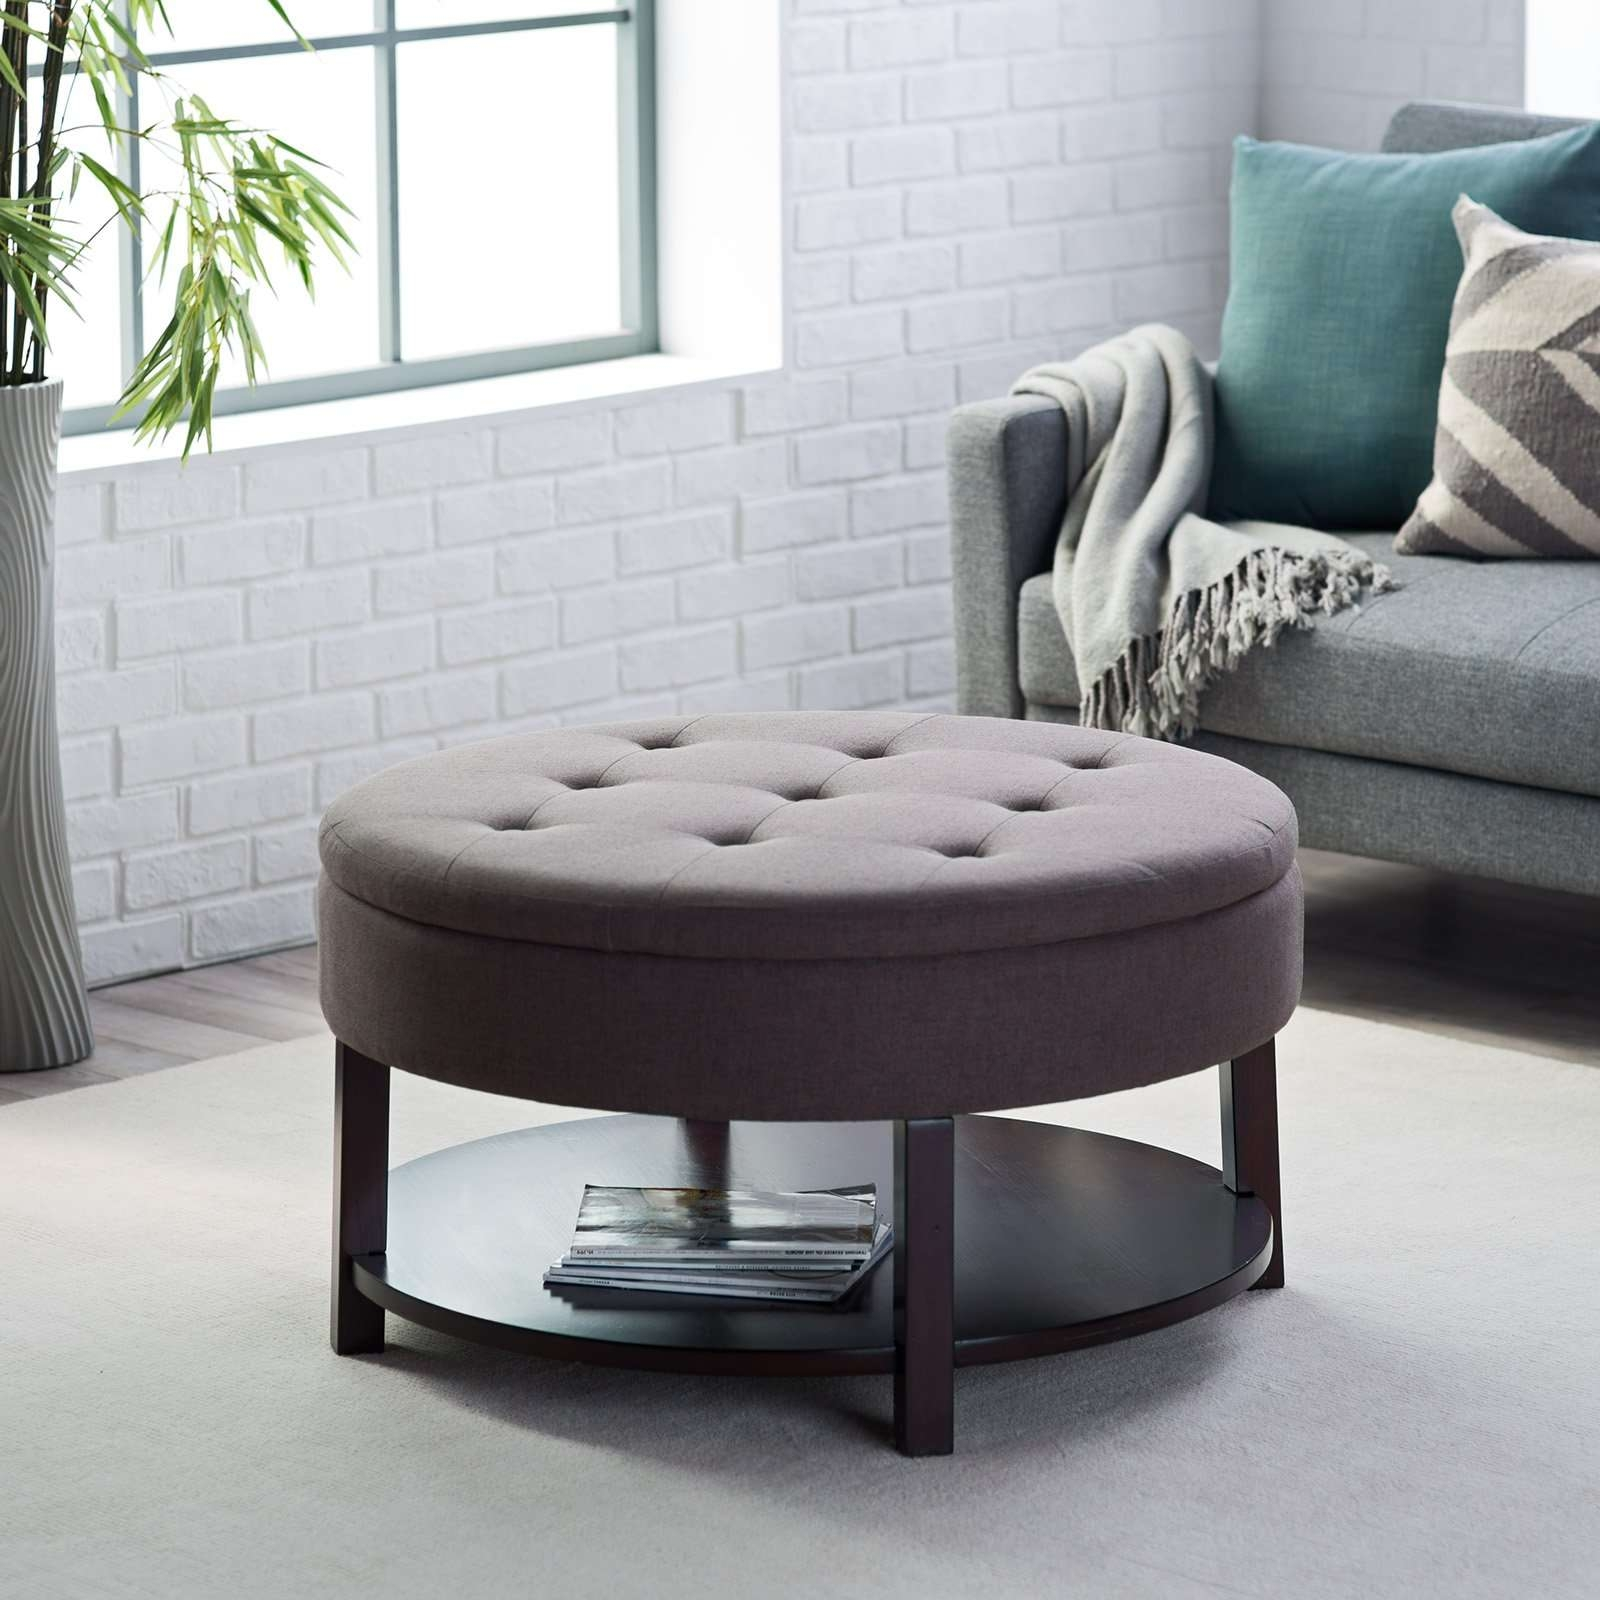 Coffee Table : Amazing Footstool Coffee Table Footstool Coffee Intended For Favorite Round Upholstered Coffee Tables (View 4 of 20)